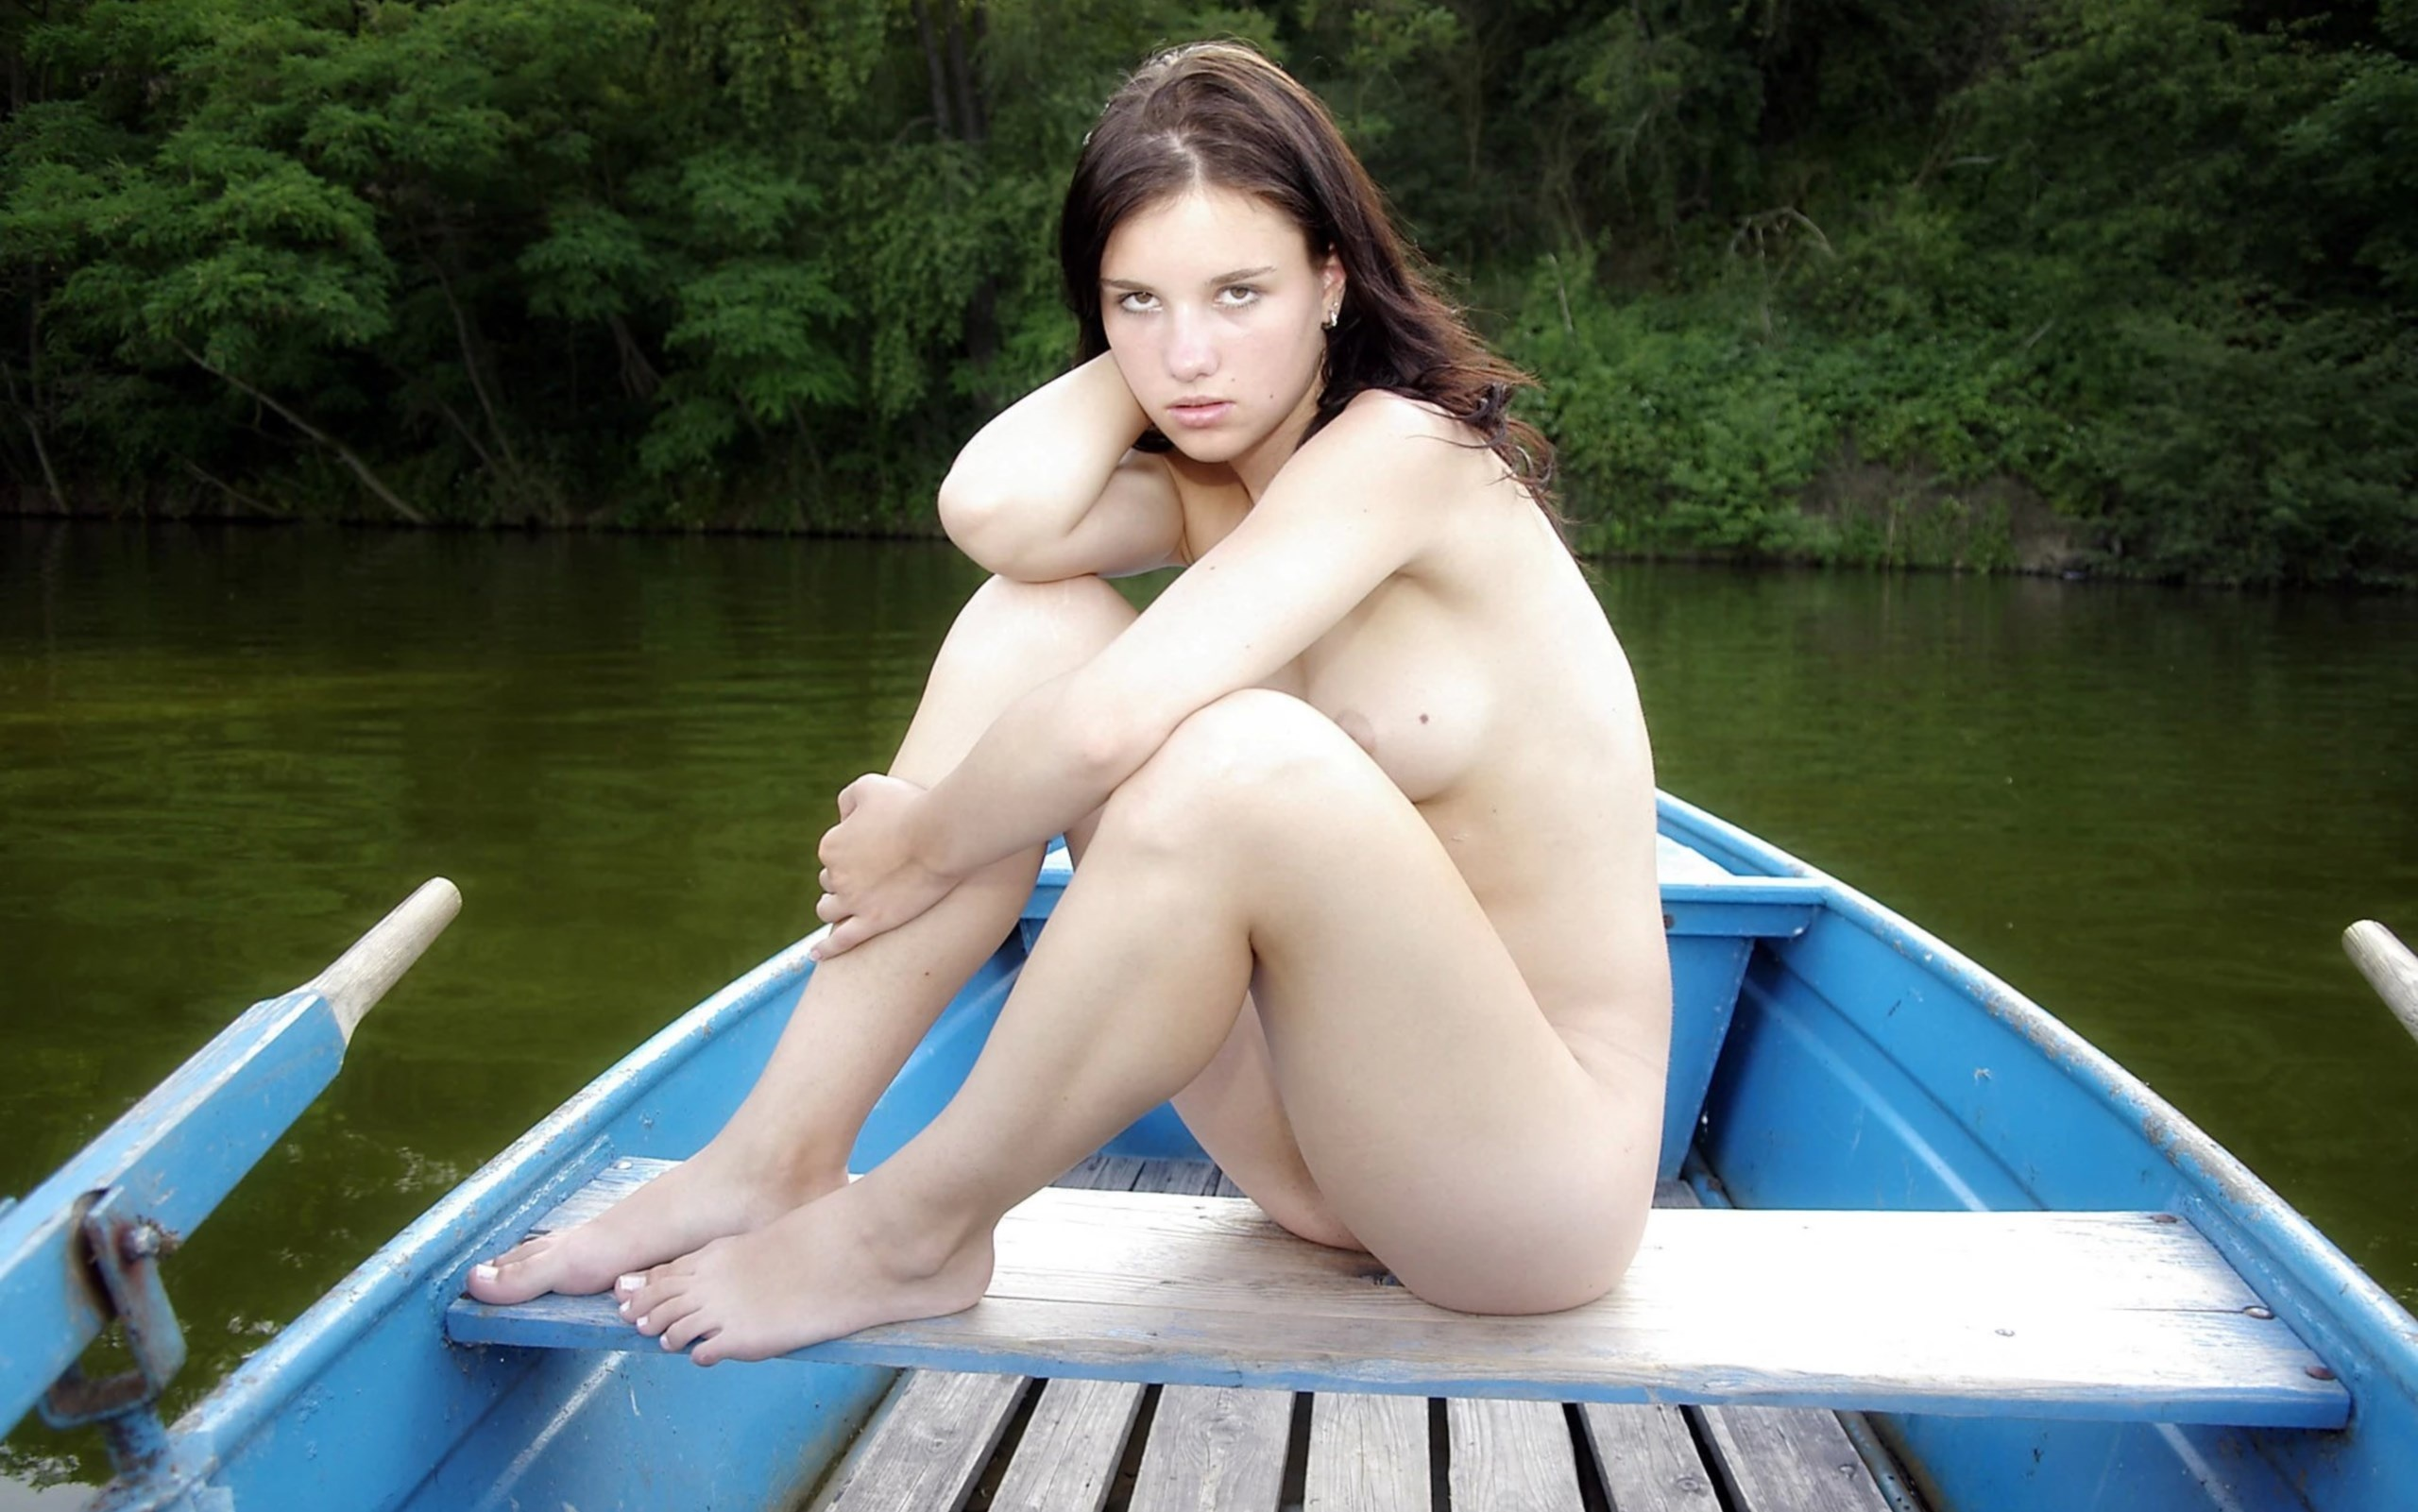 Congratulate, your Hot body nude boat above told